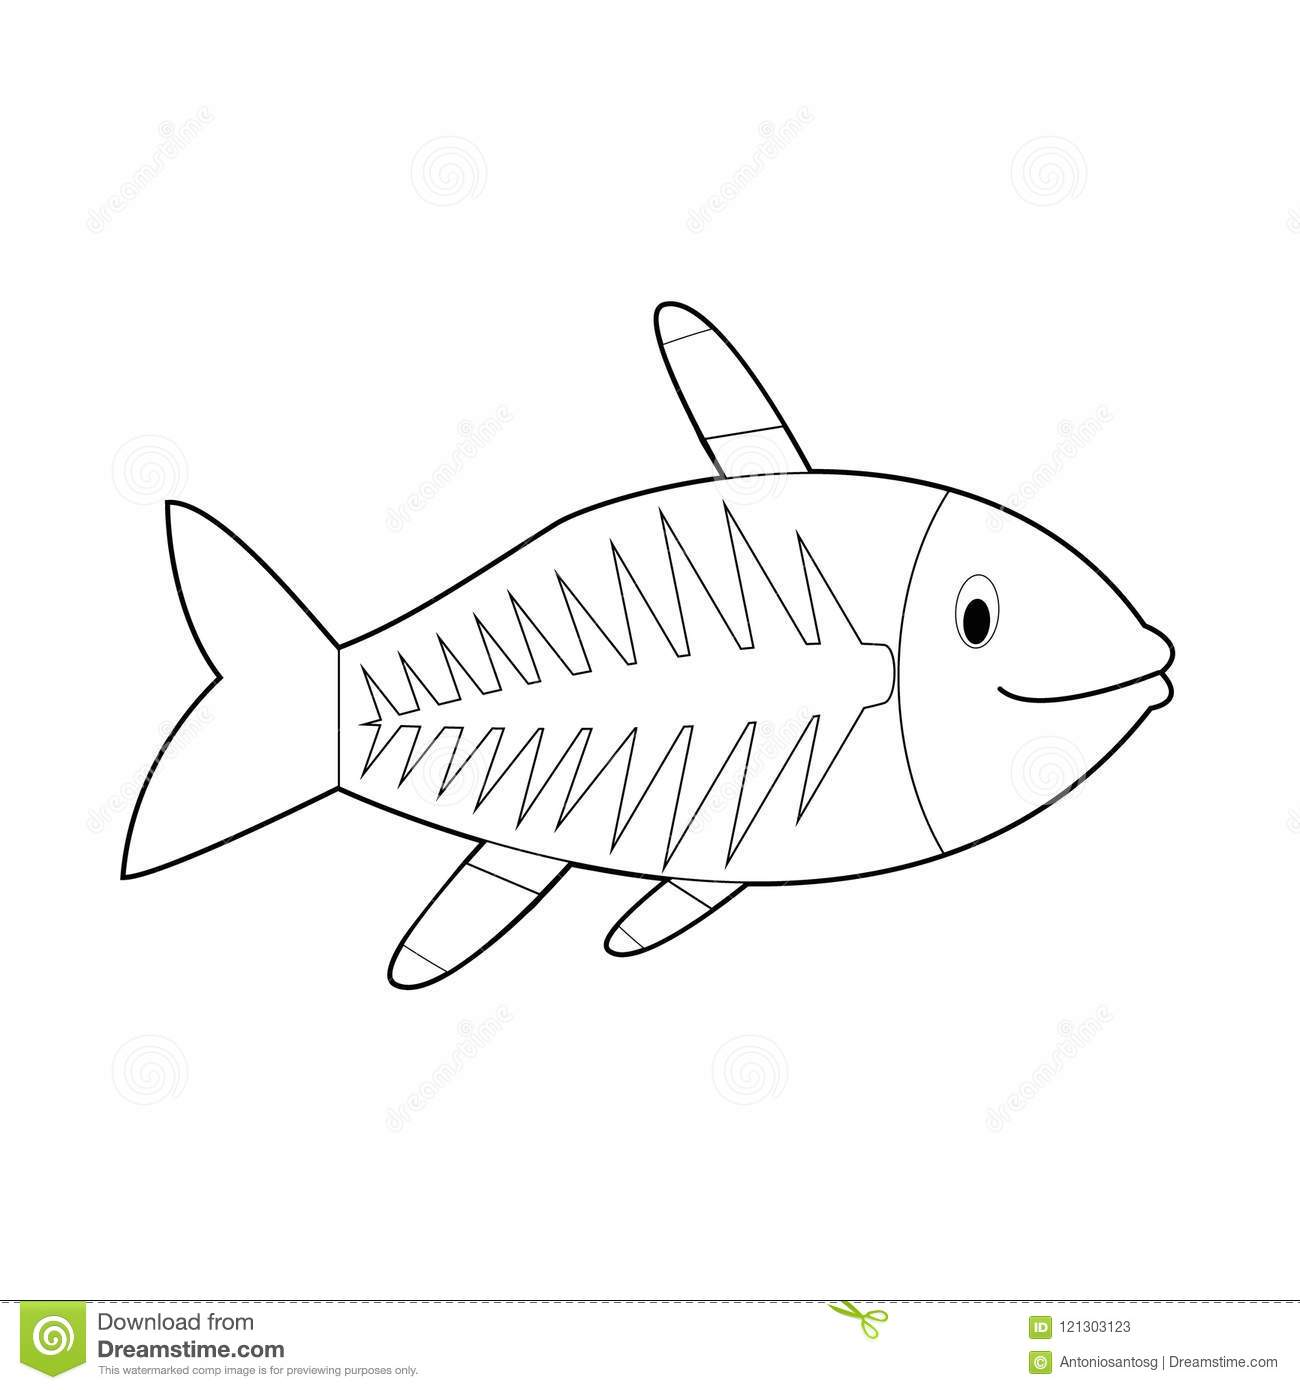 Easy Coloring Animals For Kids: X-Ray Fish Stock Vector ...